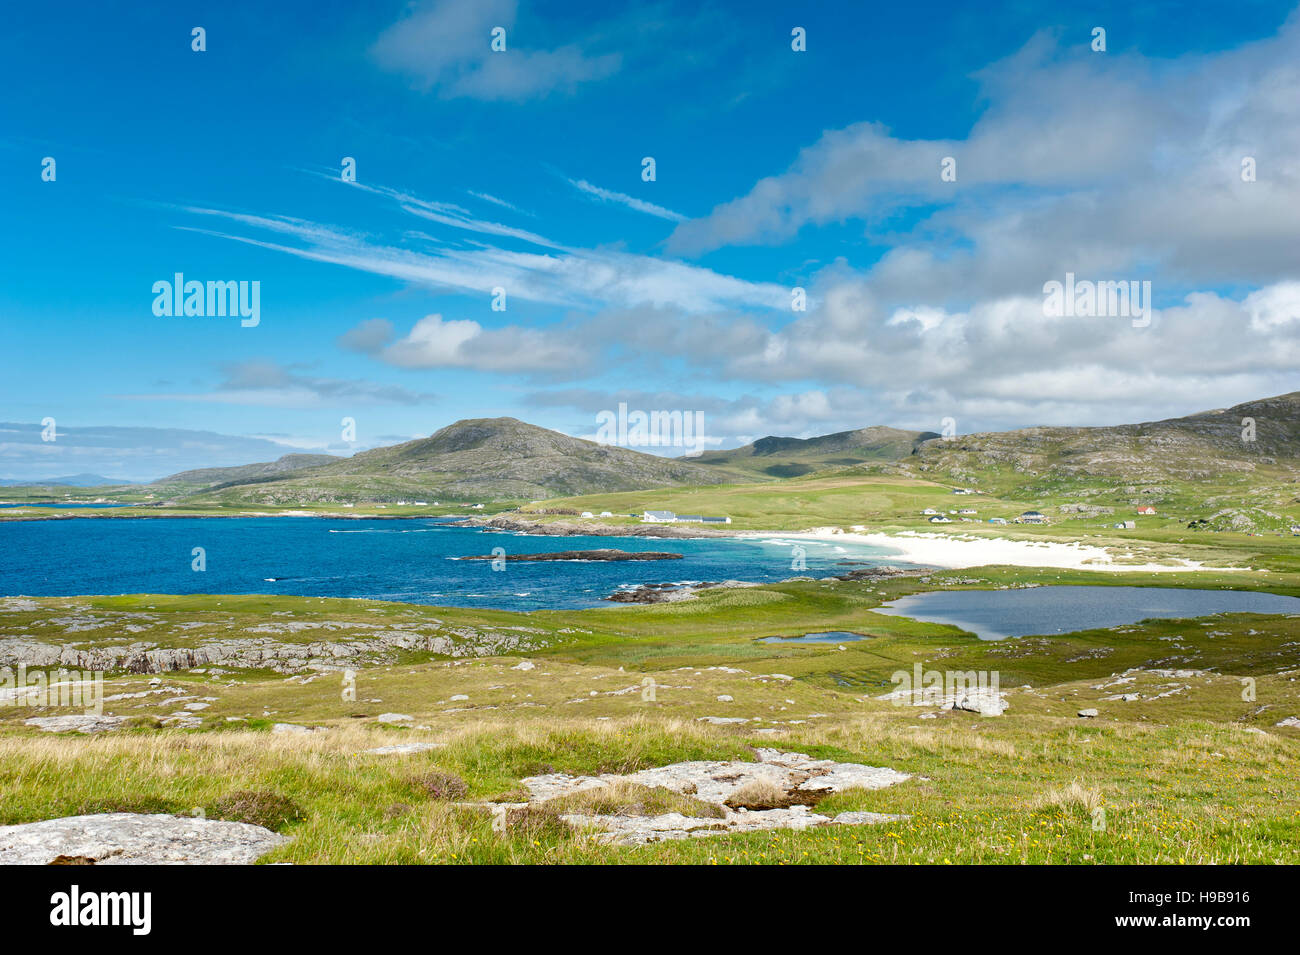 Coast at Tangasdal Beach, Atlantic Ocean, Isle of Barra, Outer Hebrides, Scotland, United Kingdom - Stock Image